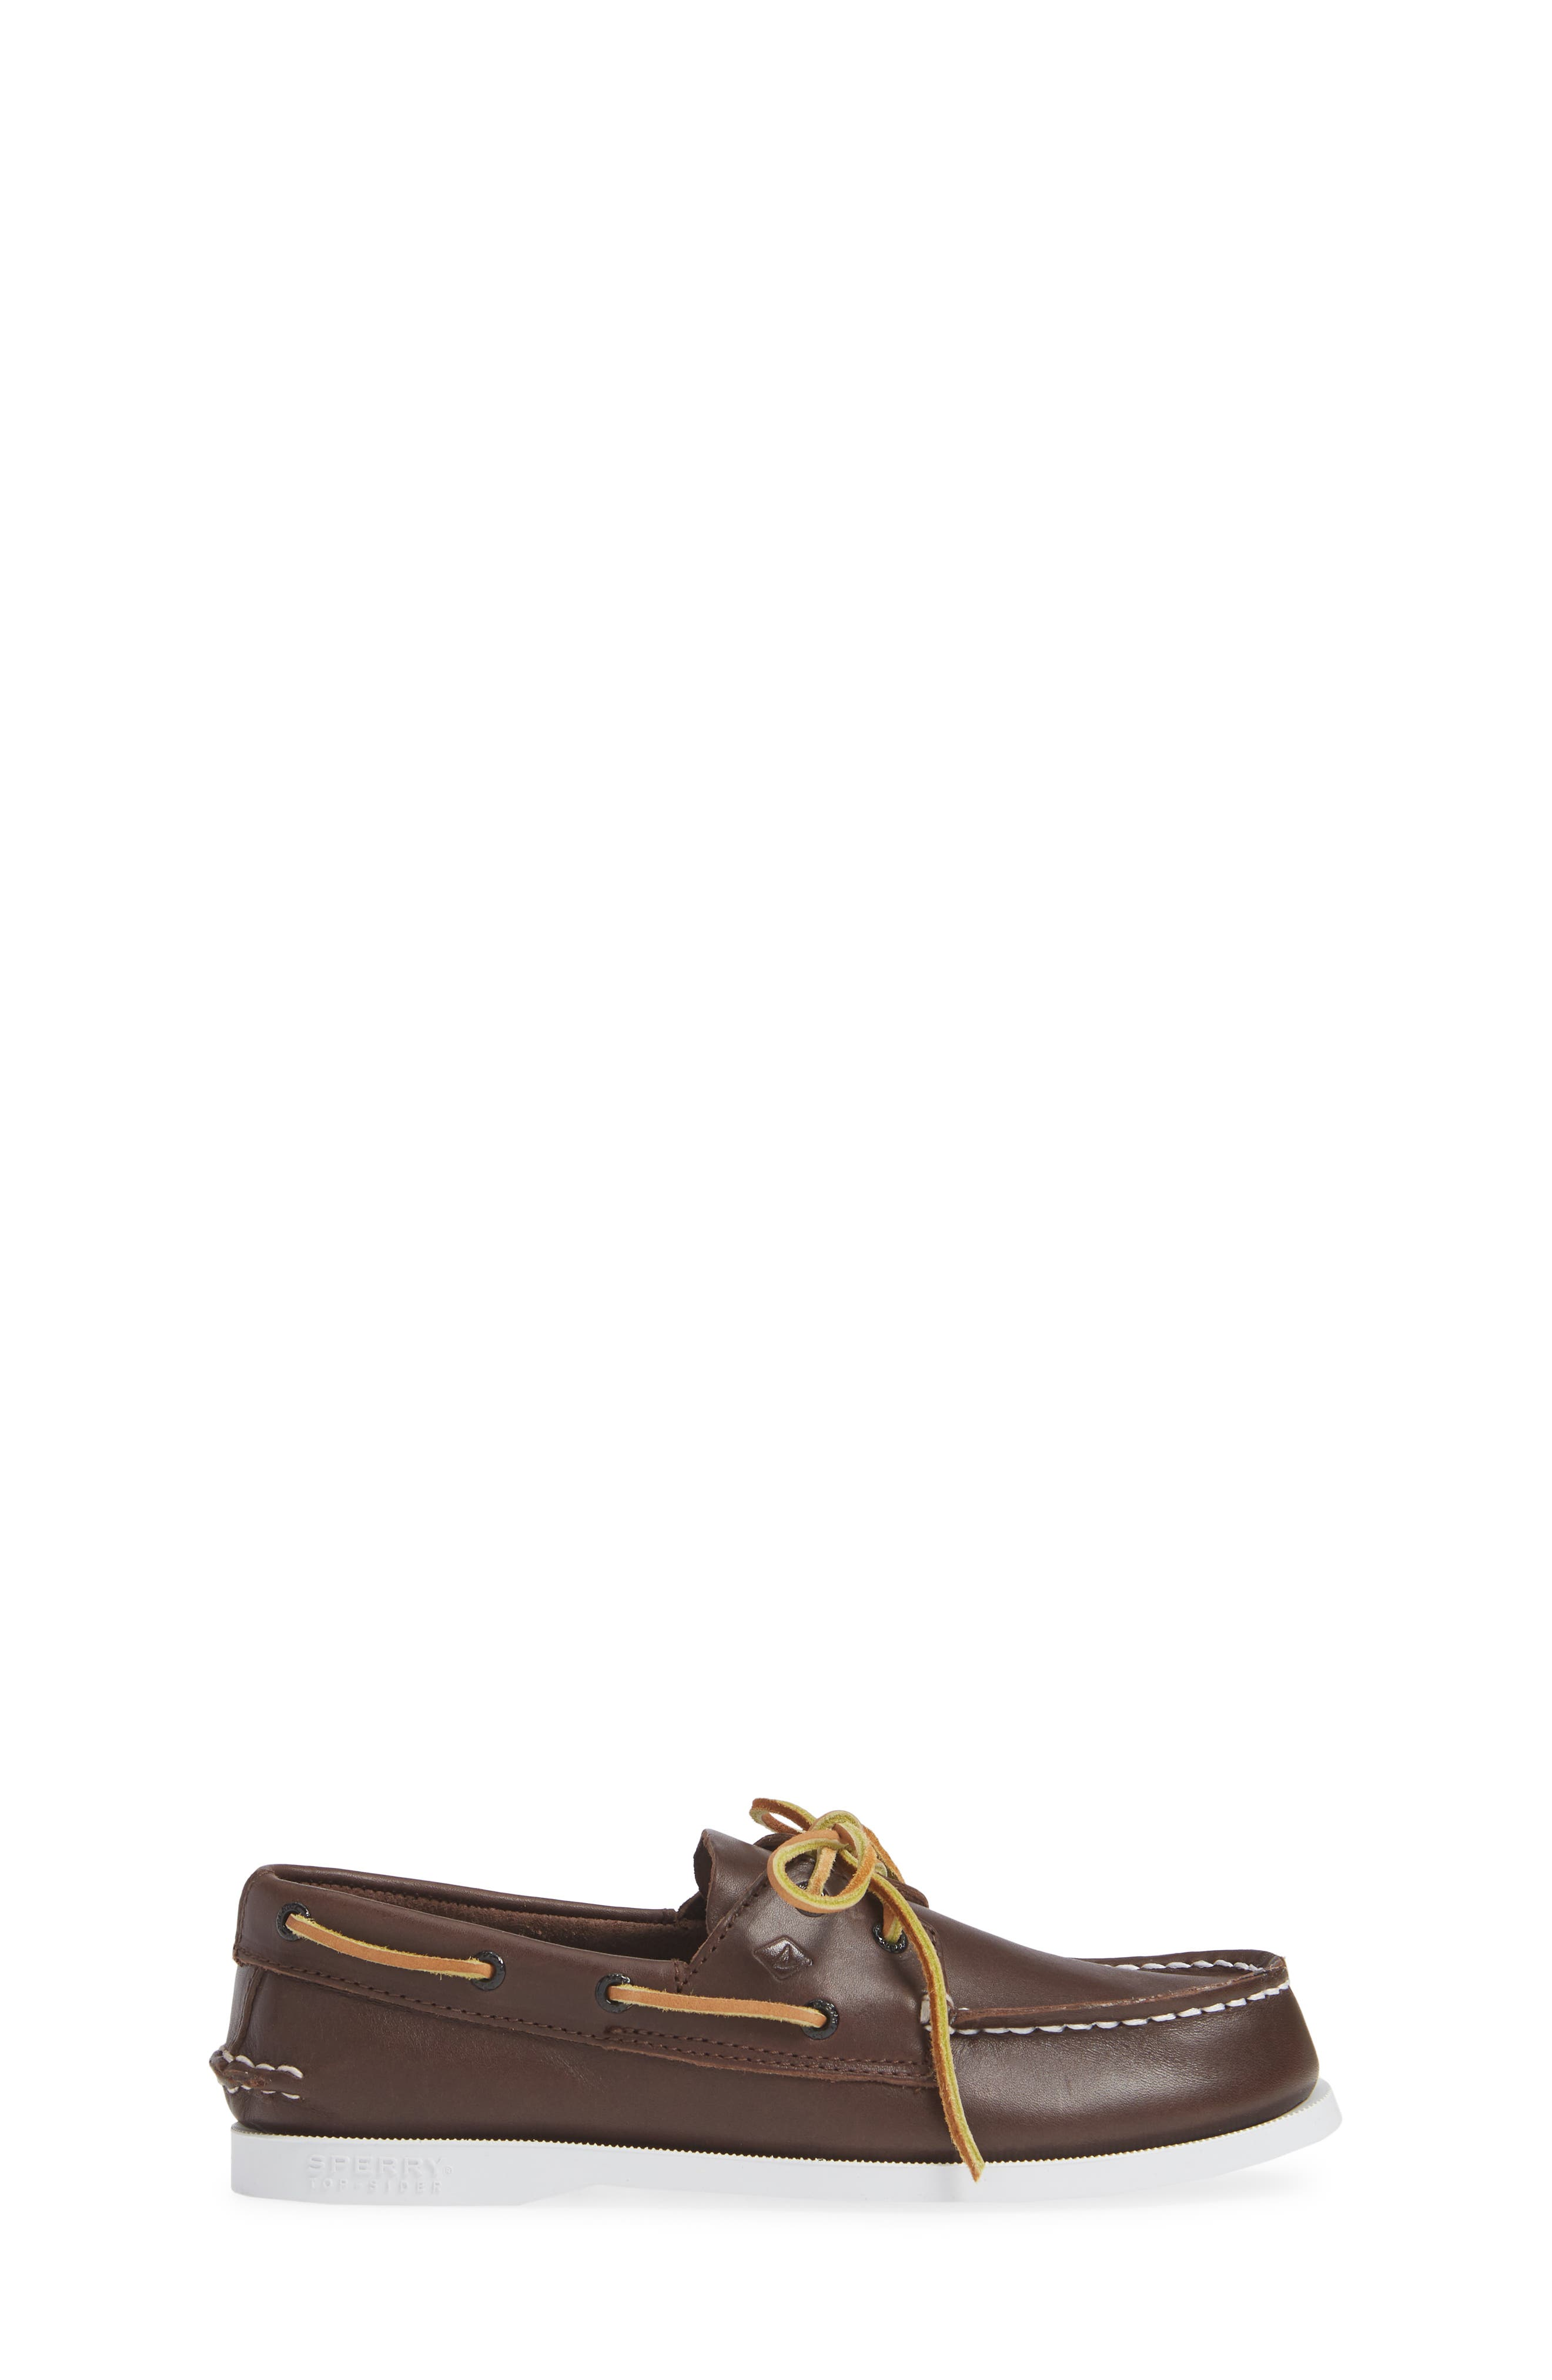 SPERRY KIDS, 'Authentic Original' Boat Shoe, Alternate thumbnail 4, color, BROWN LEATHER